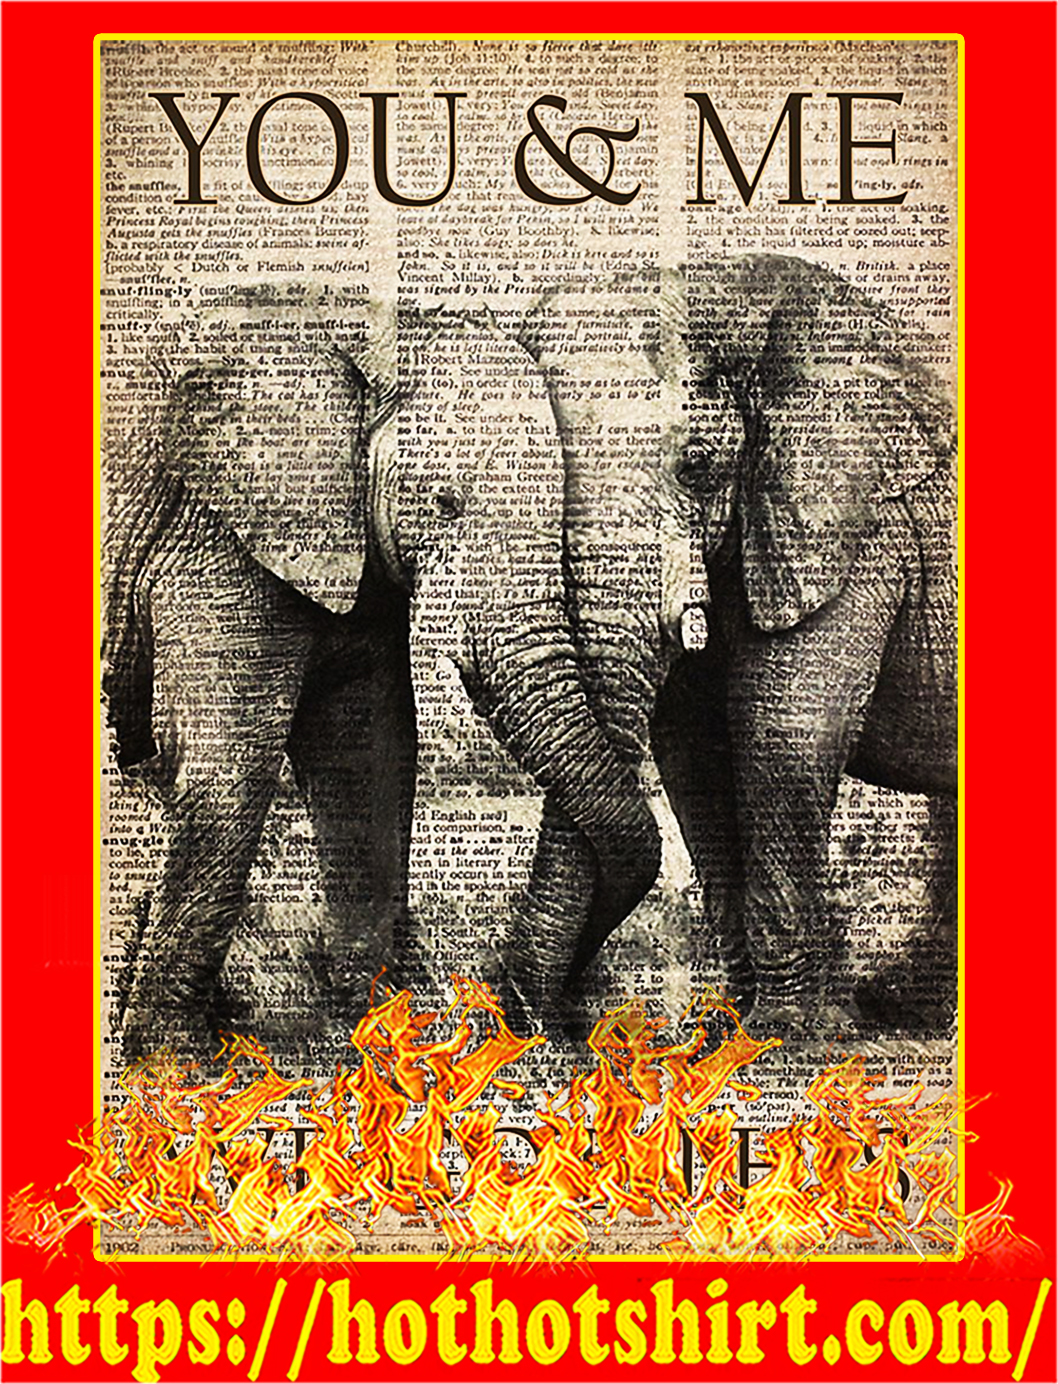 You and me we got this elephant poster - A1